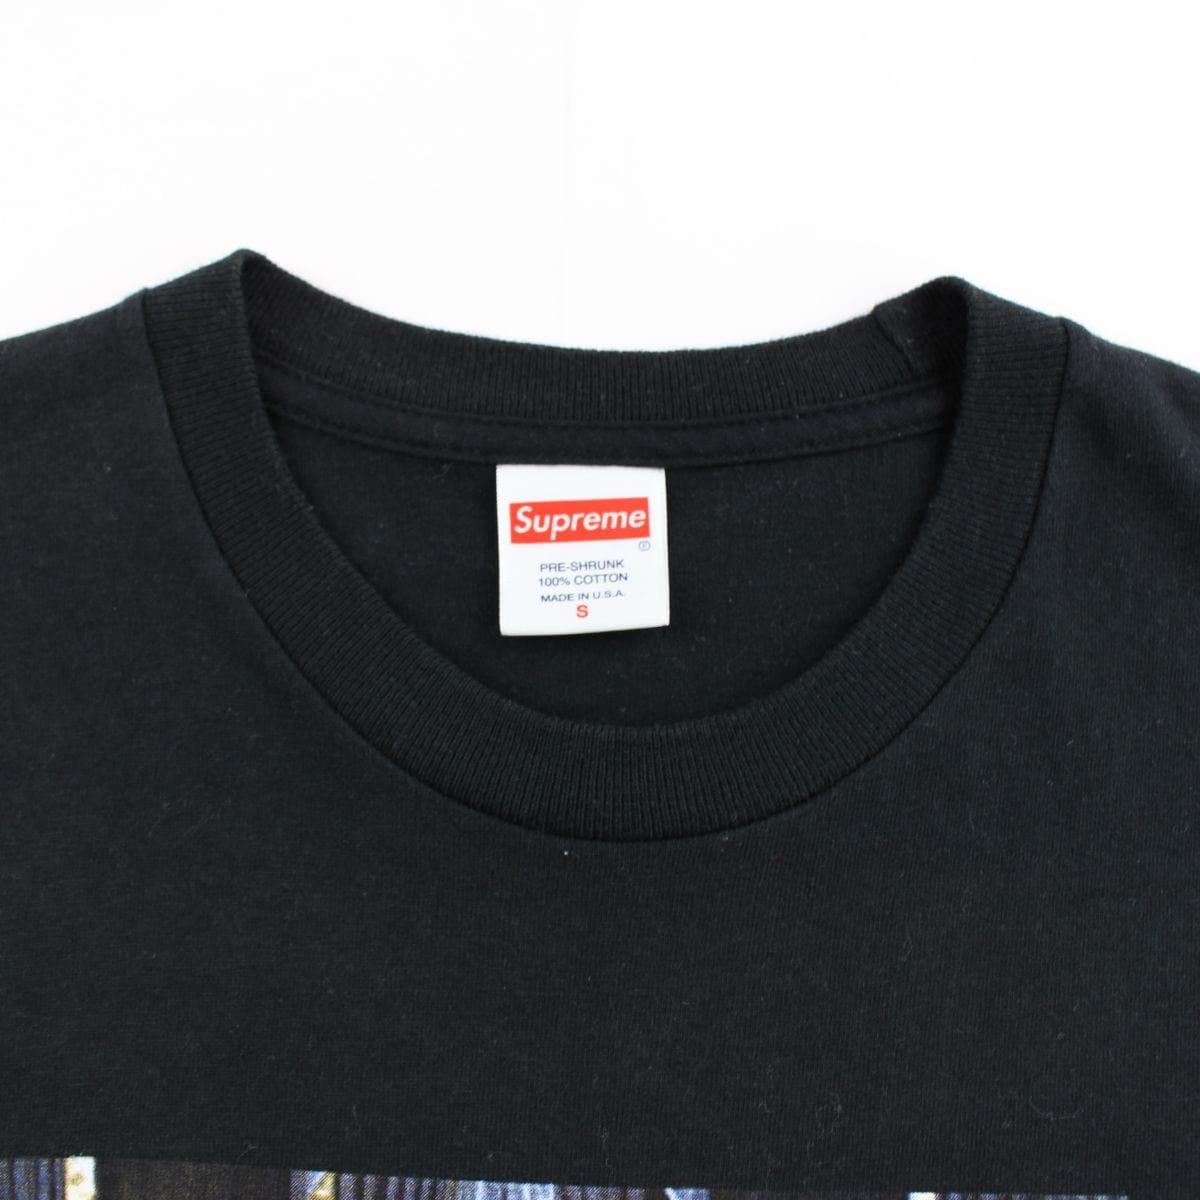 supreme x scarface tee black 2017 - SaruGeneral